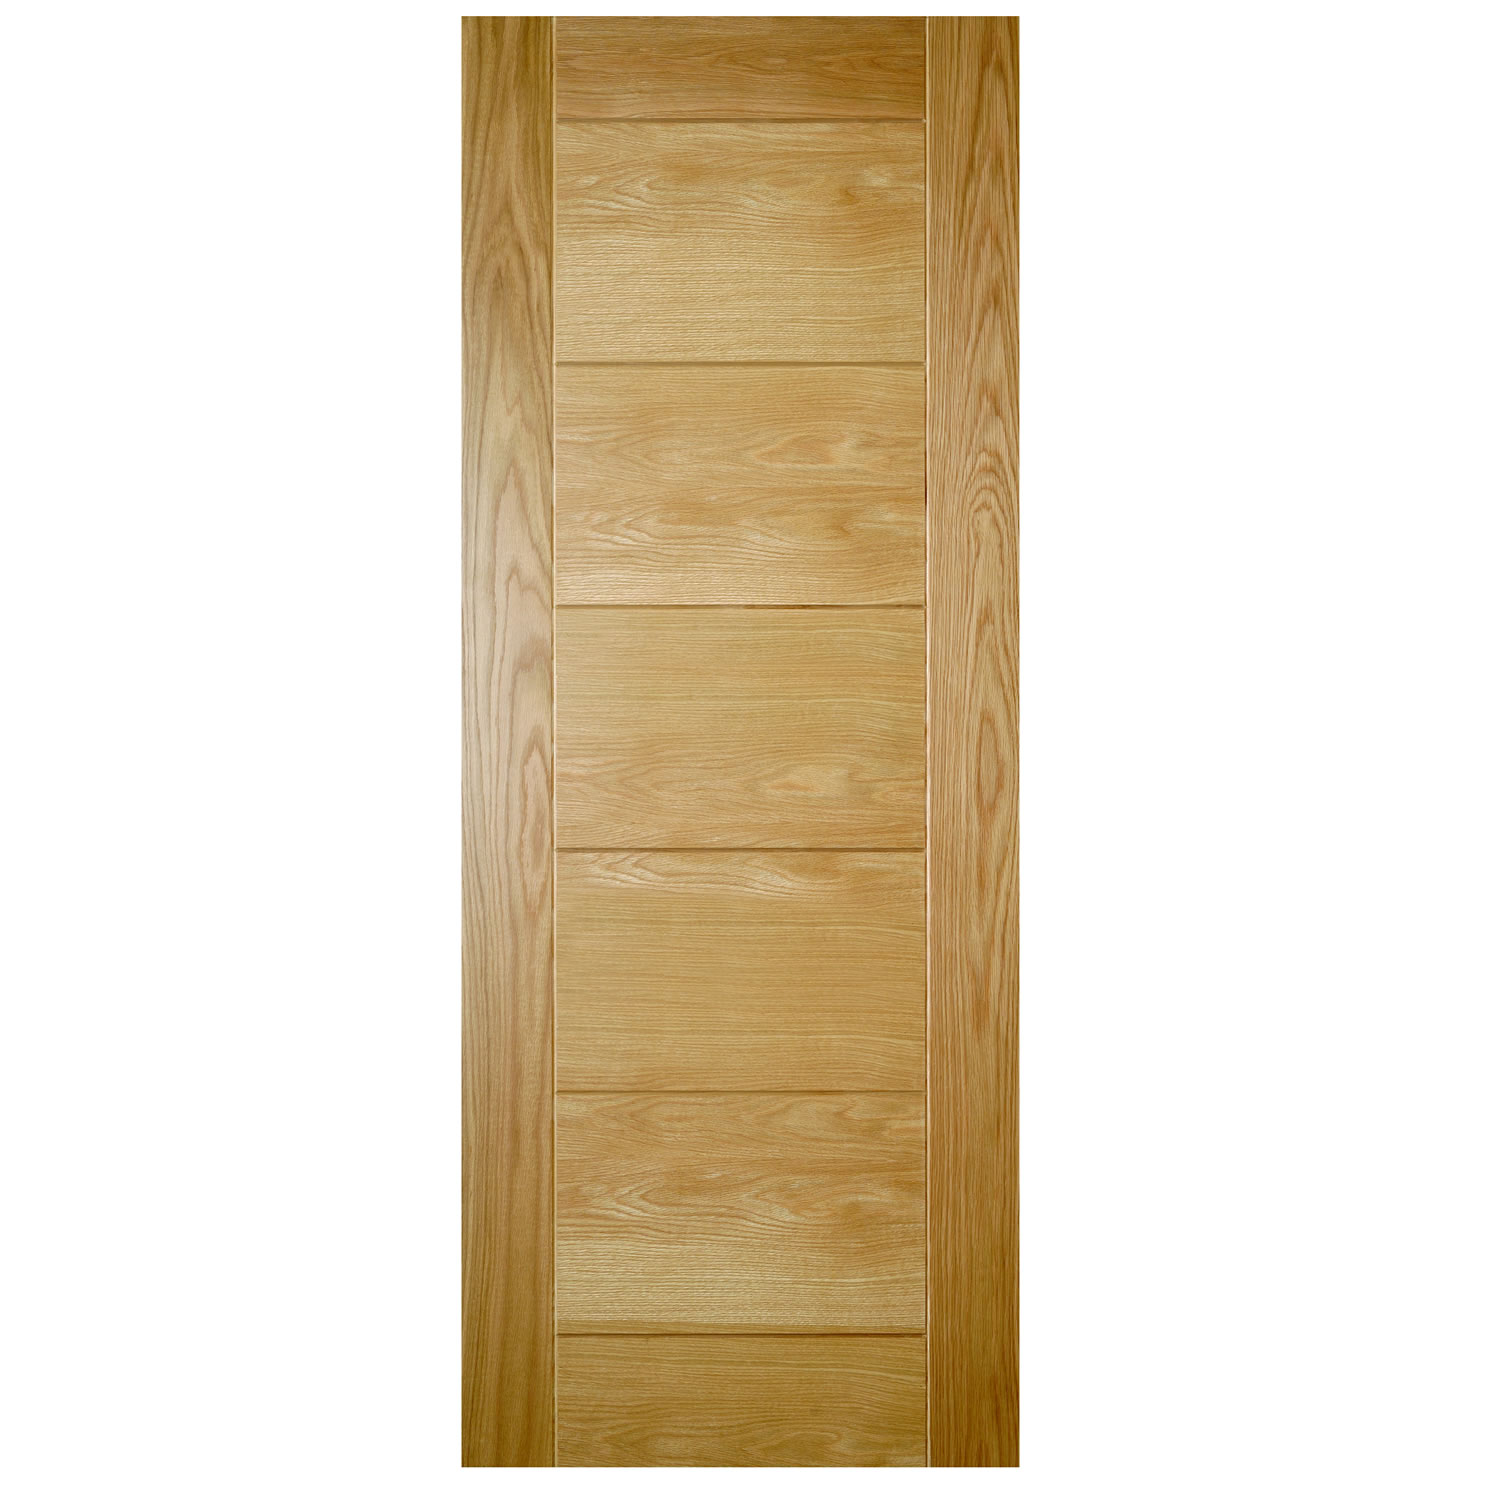 Prefinished internal oak doors are solid